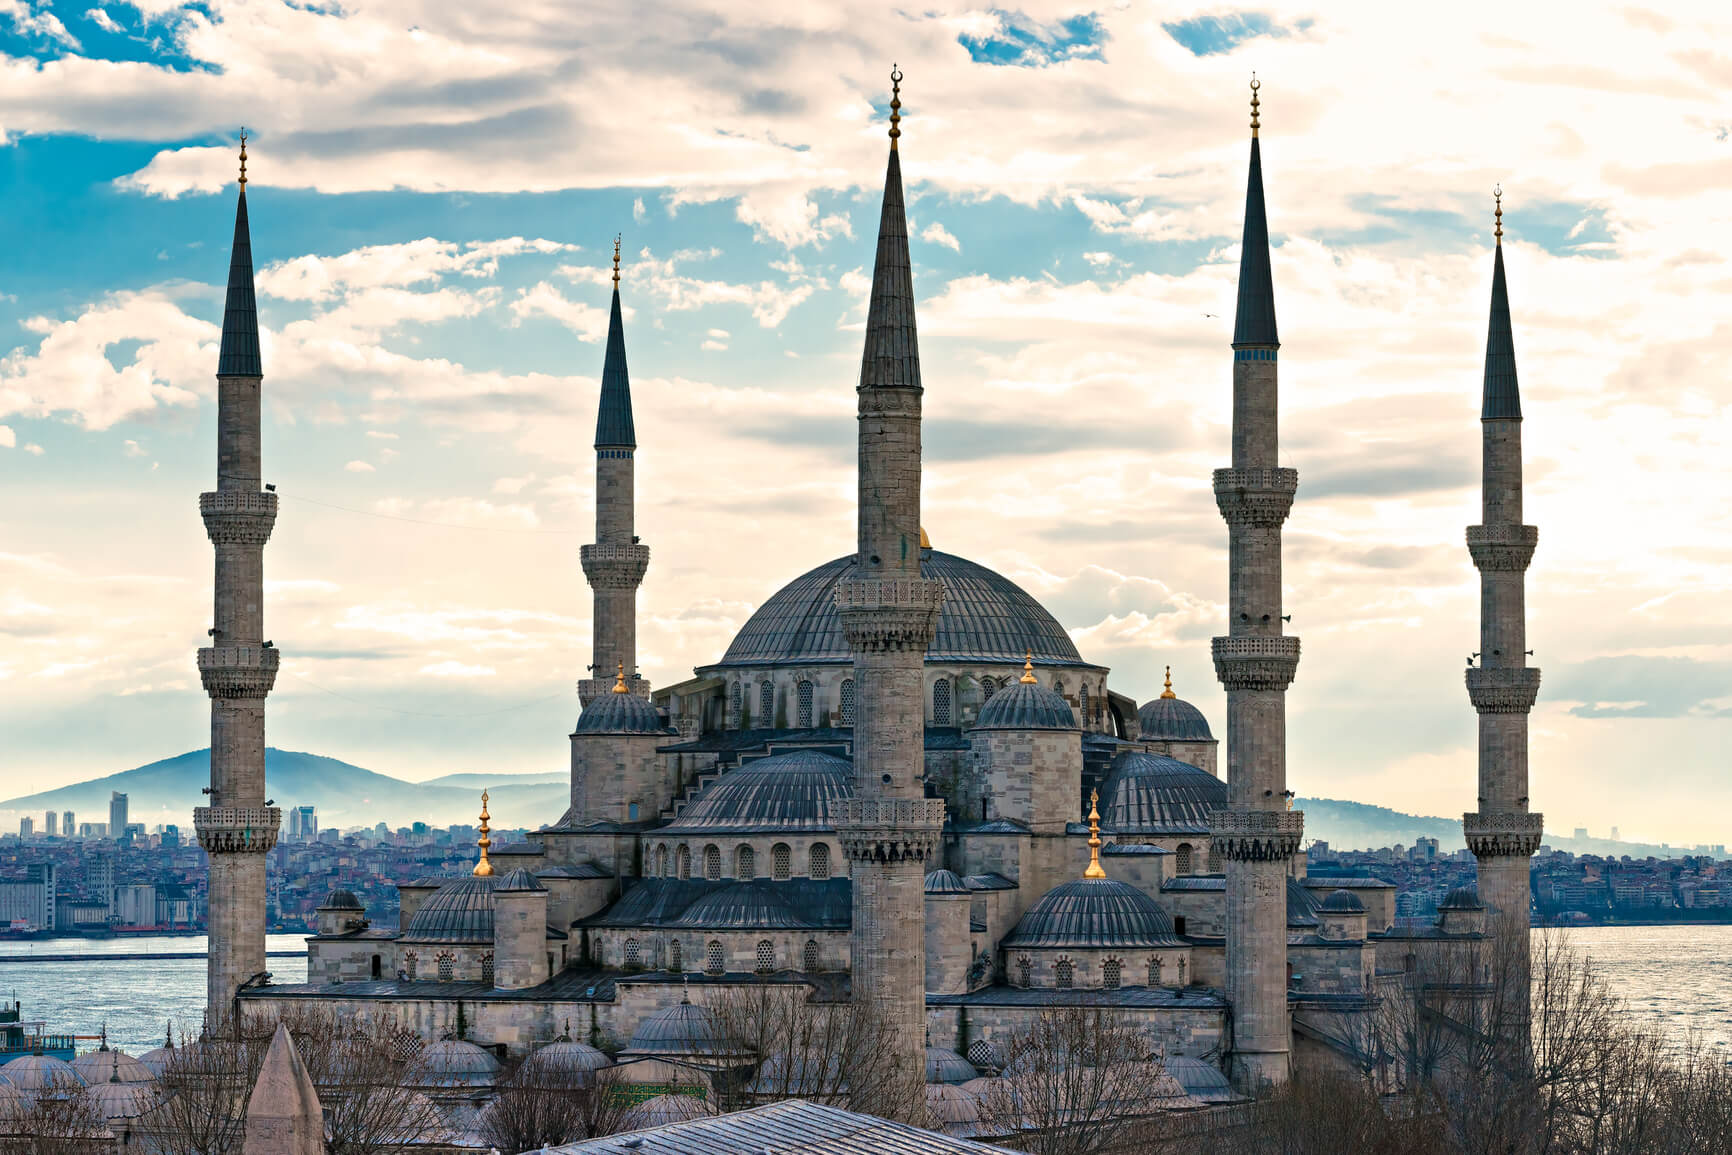 Many European cities to Istanbul, Turkey from only €66 roundtrip